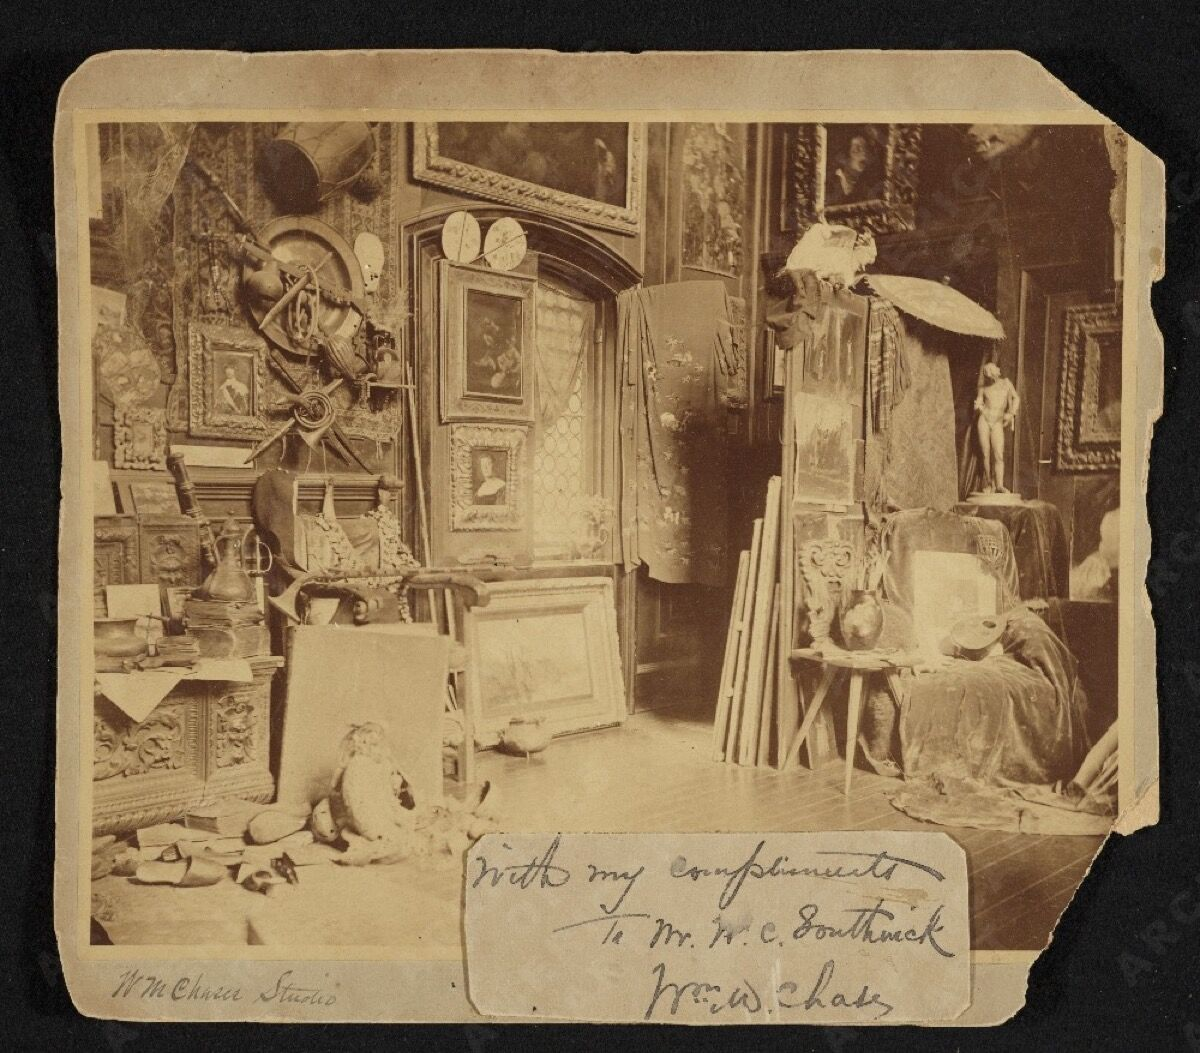 William Merritt Chase's 10th Street studio in New York, ca. 1880. Archives of American Art, Smithsonian Institution.